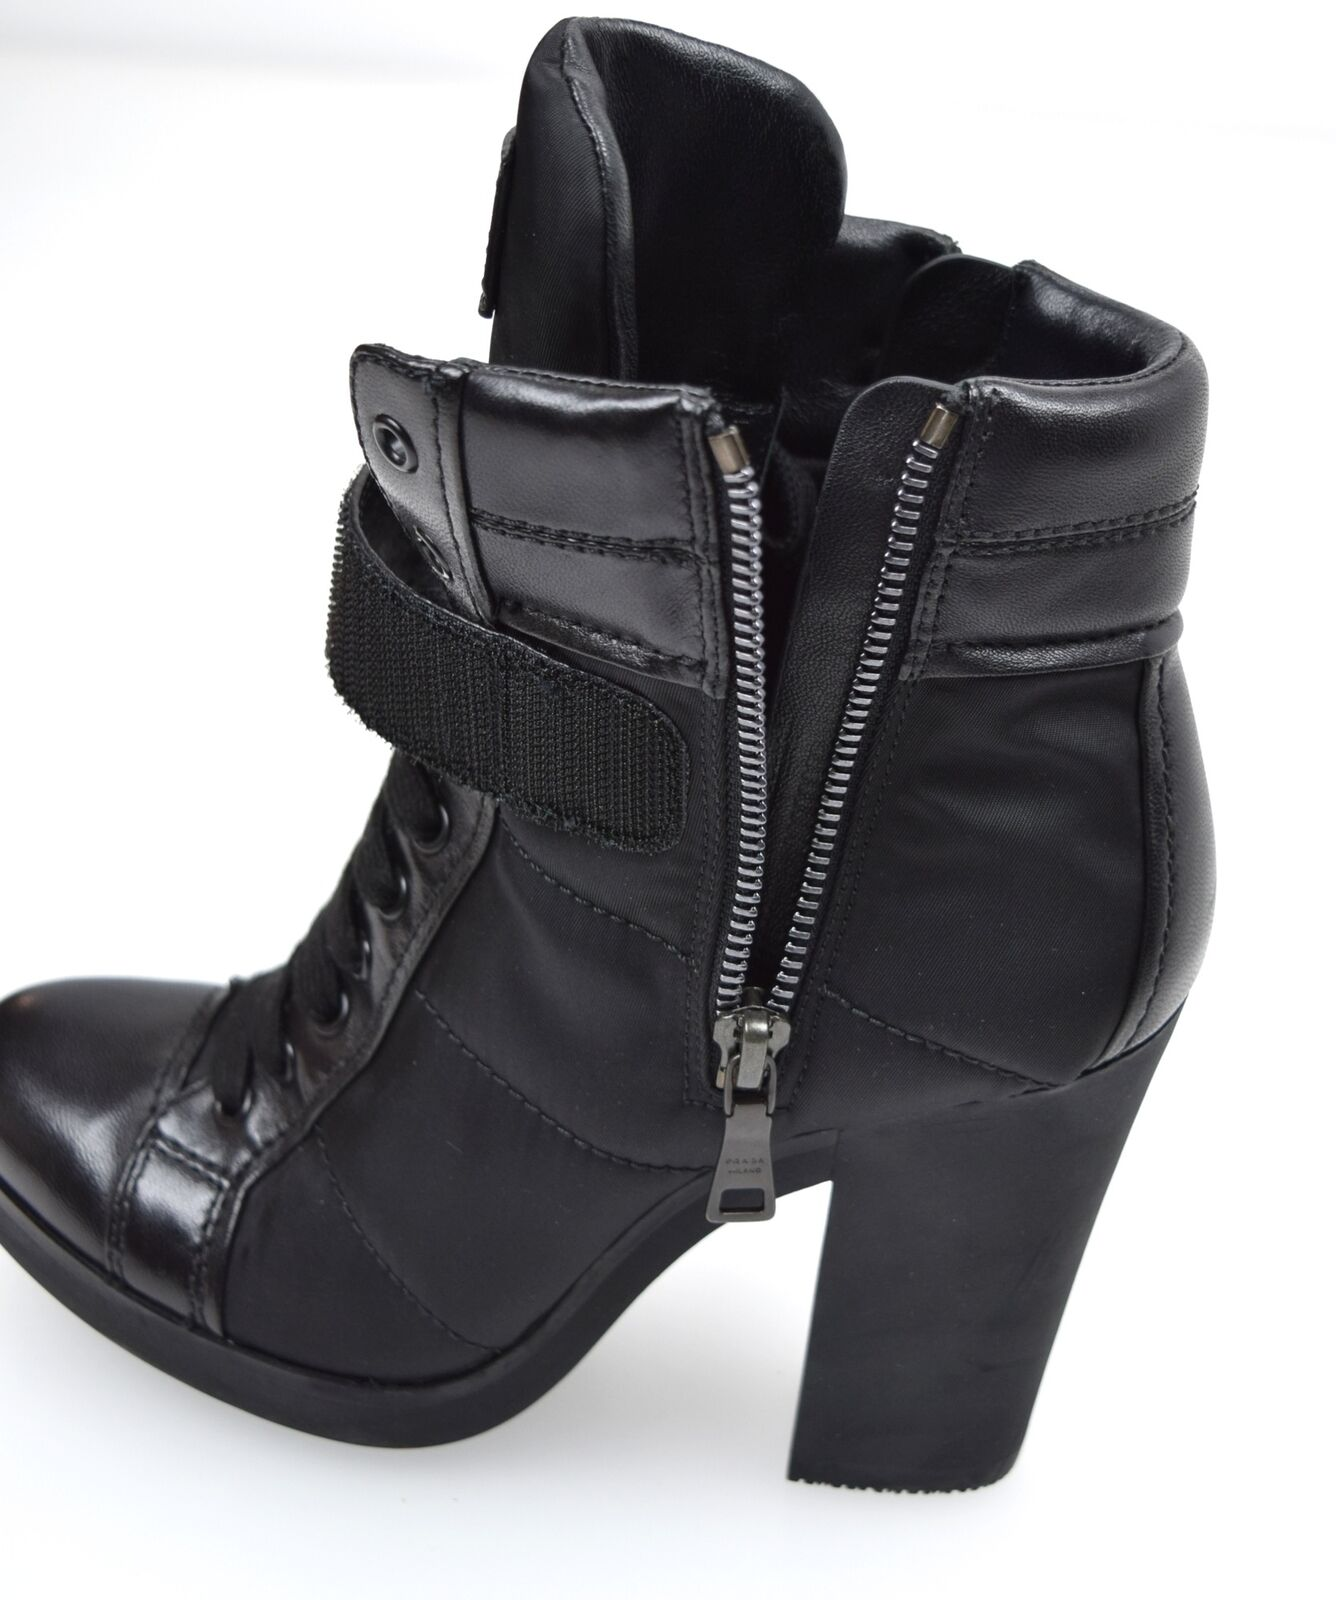 PRADA WOMAN ANKLE Stiefel TIME StiefelIES WINTER CASUAL FREE TIME Stiefel LEATHER CODE 3TP020 d8439c